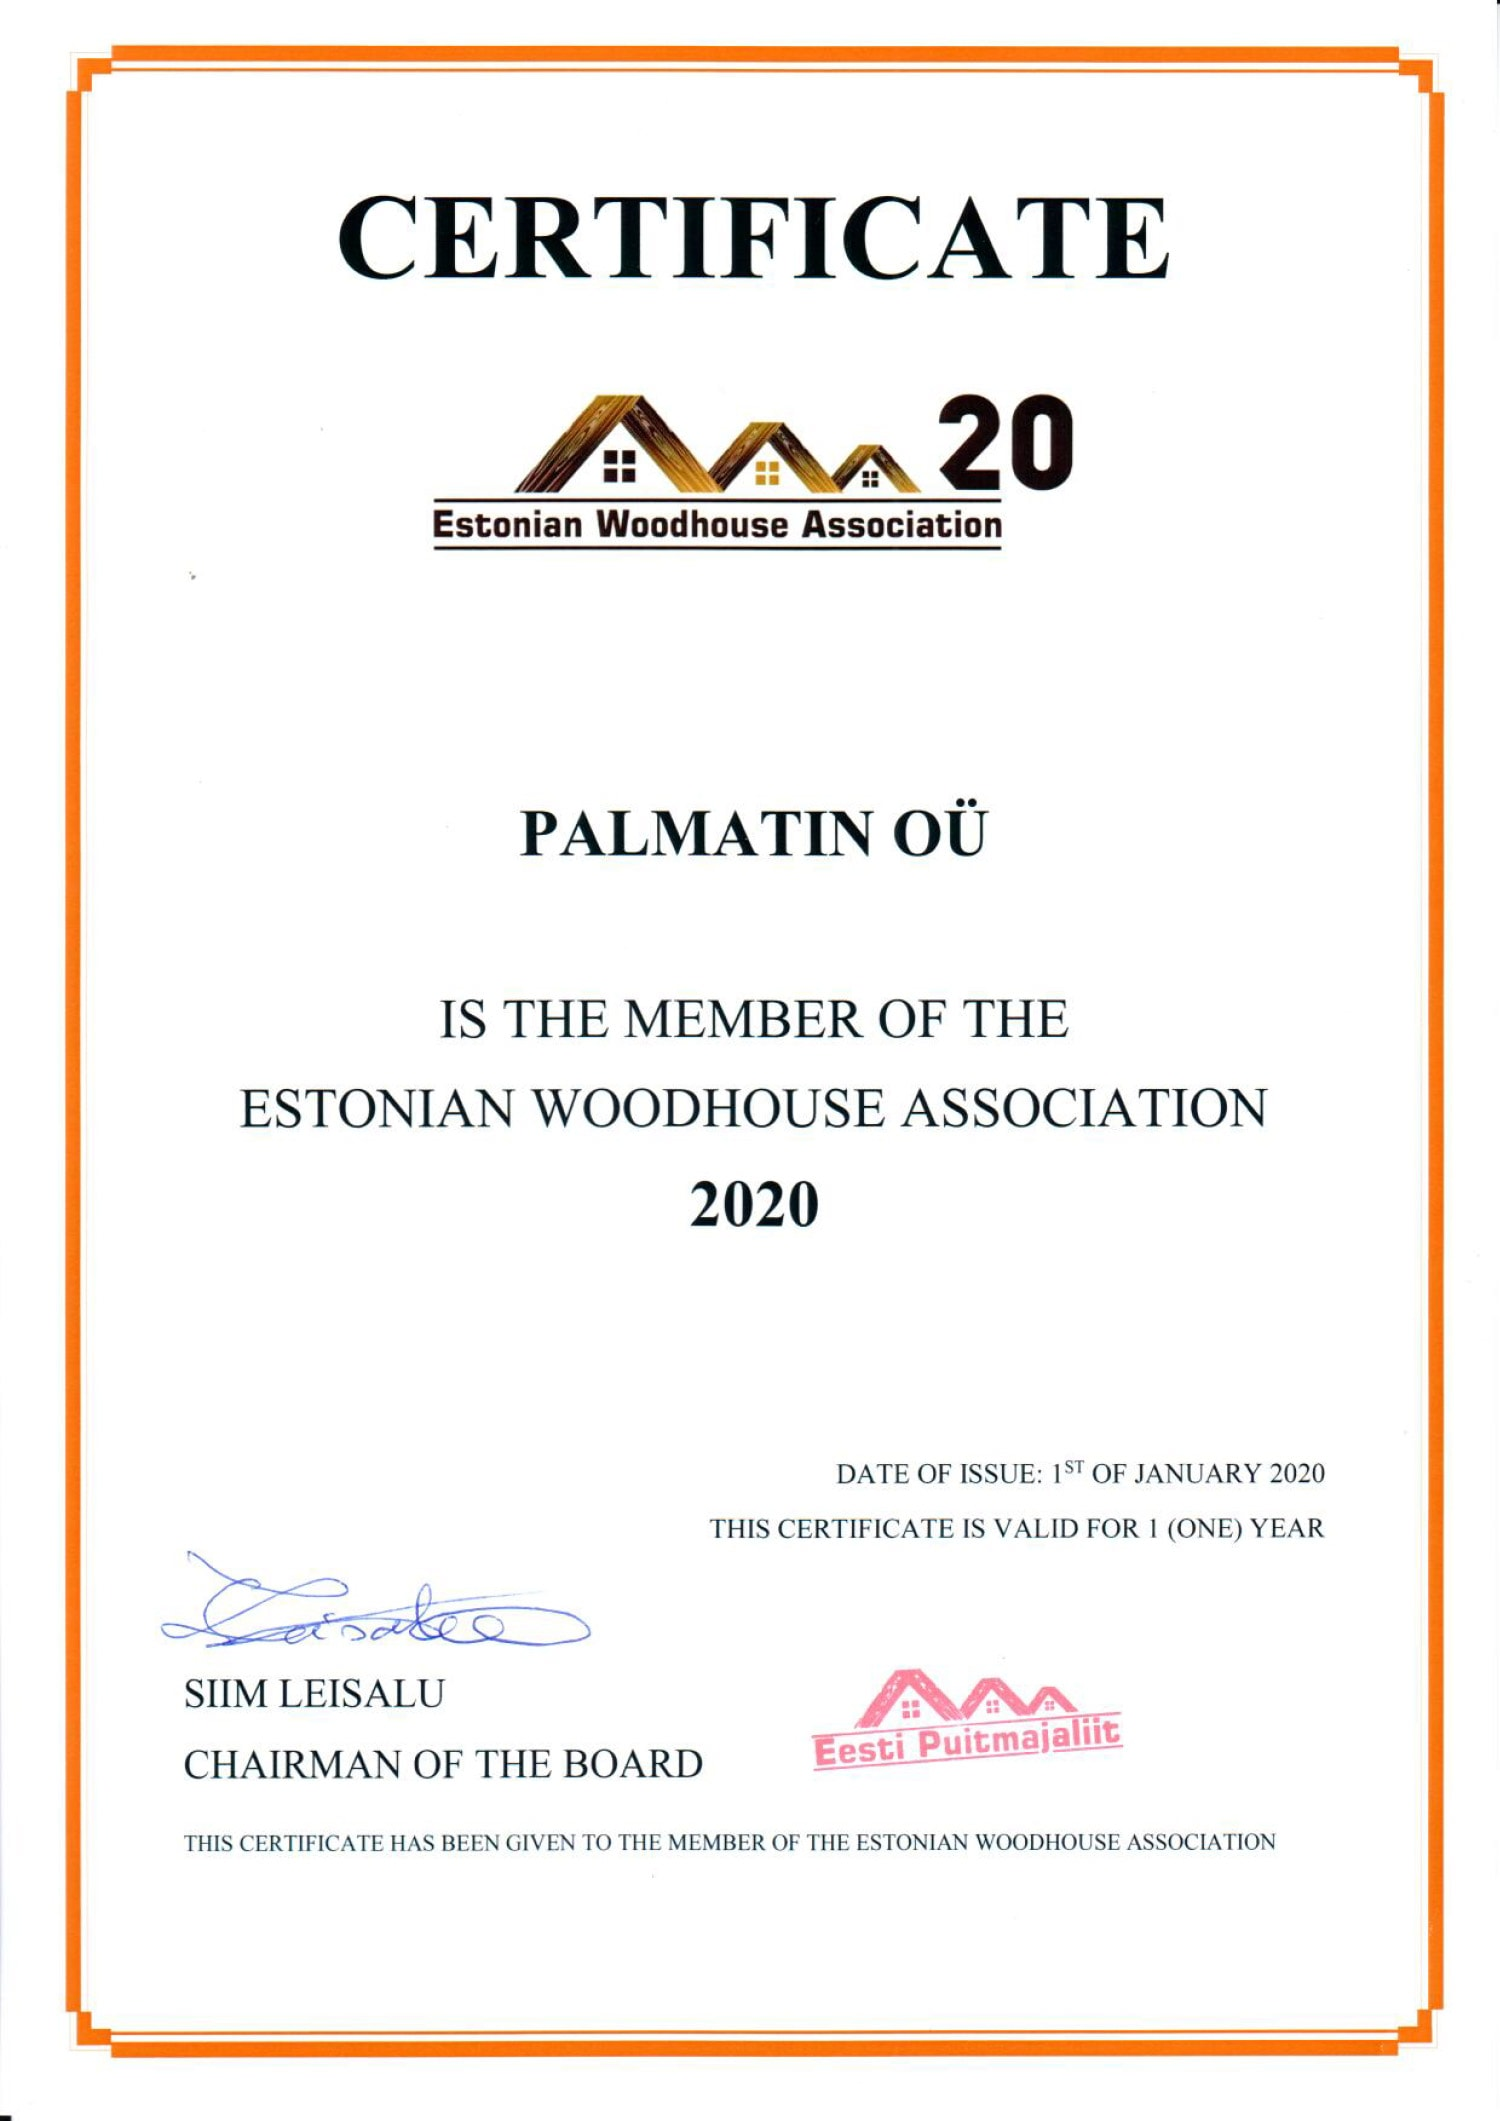 Estonian-Woodhouse-Association-2020-en